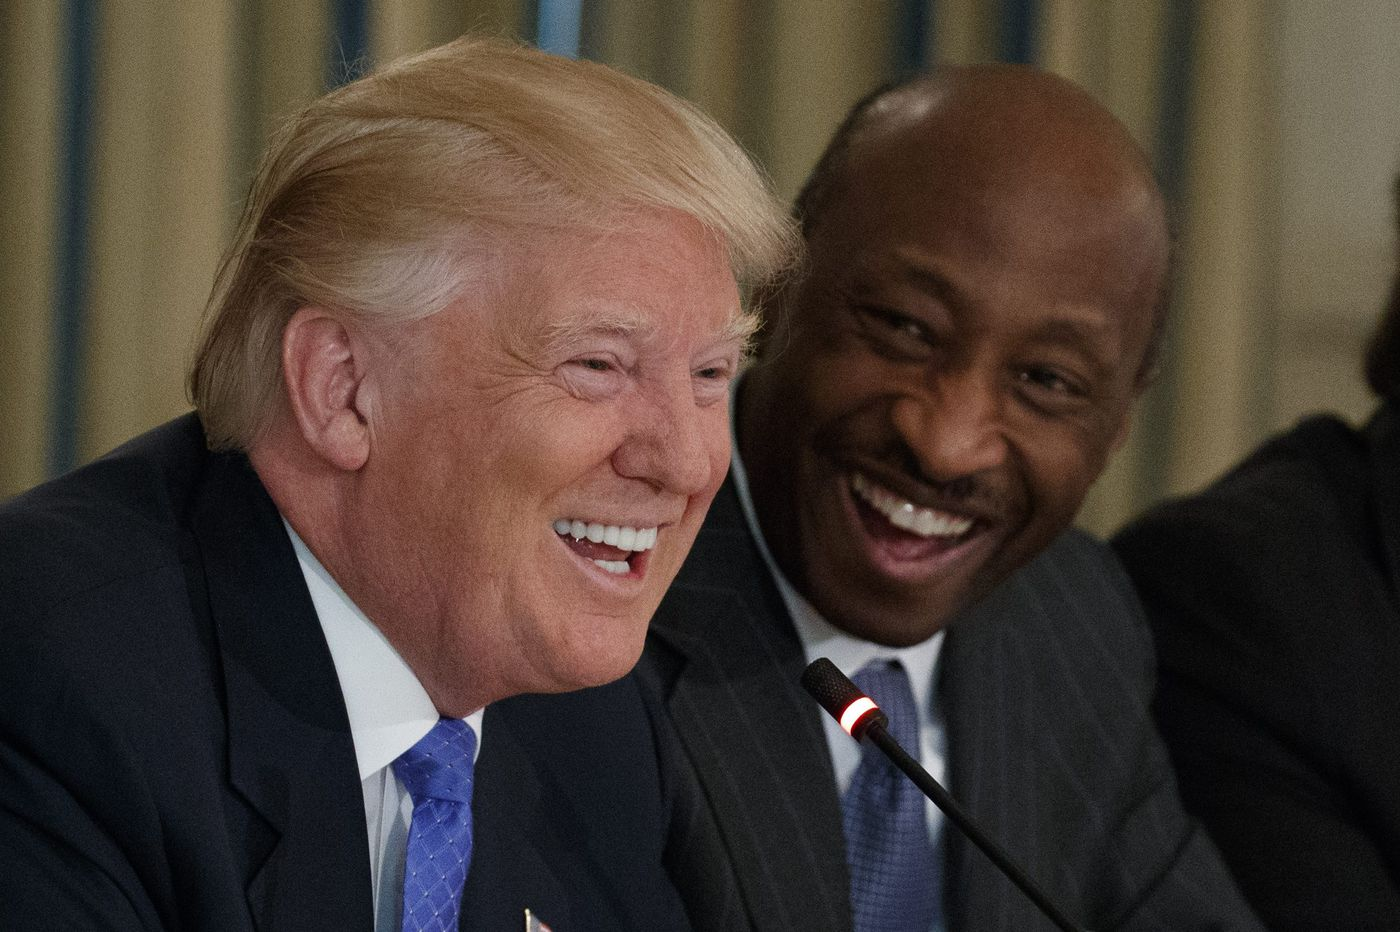 Merck CEO Kenneth Frazier, speaking in Philly, urges people to call out 'untruth, misinformation, and just plain BS'